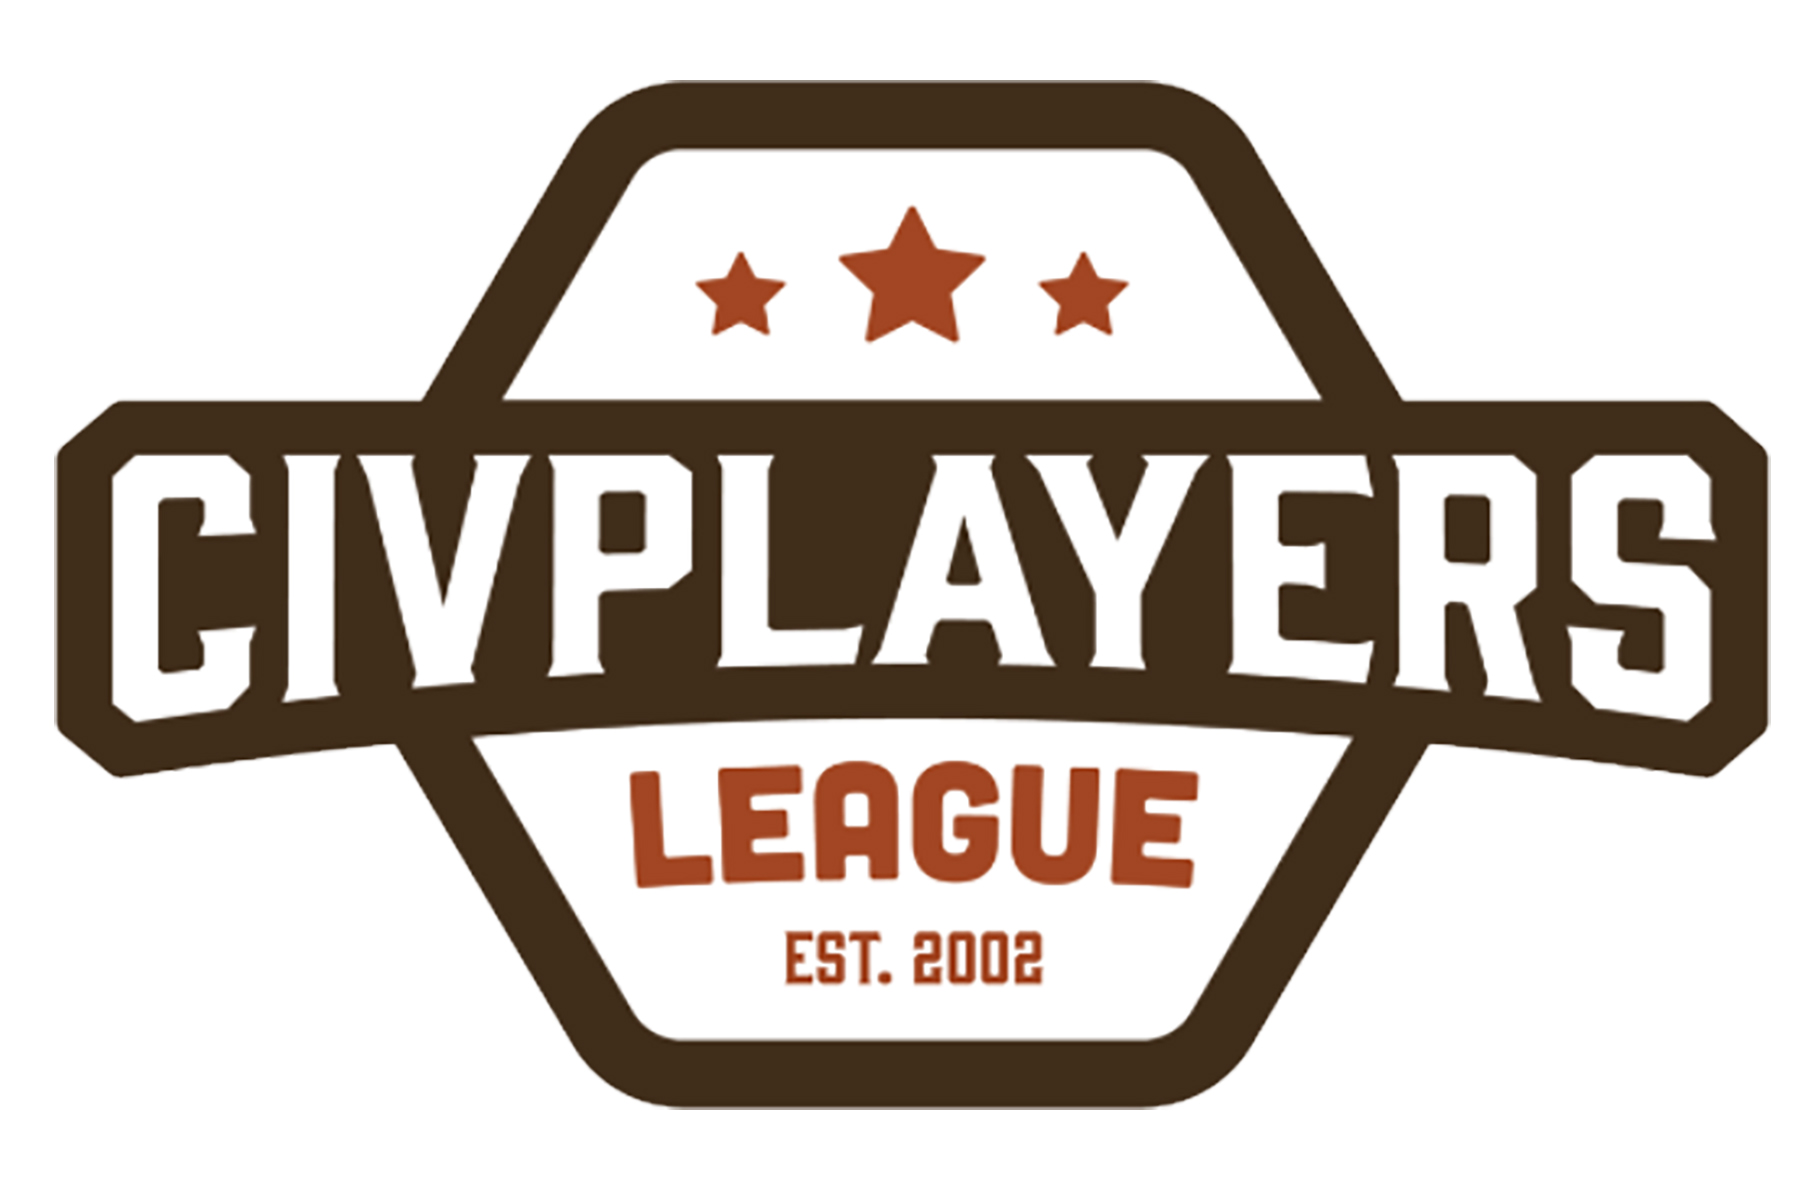 Civilization Players League